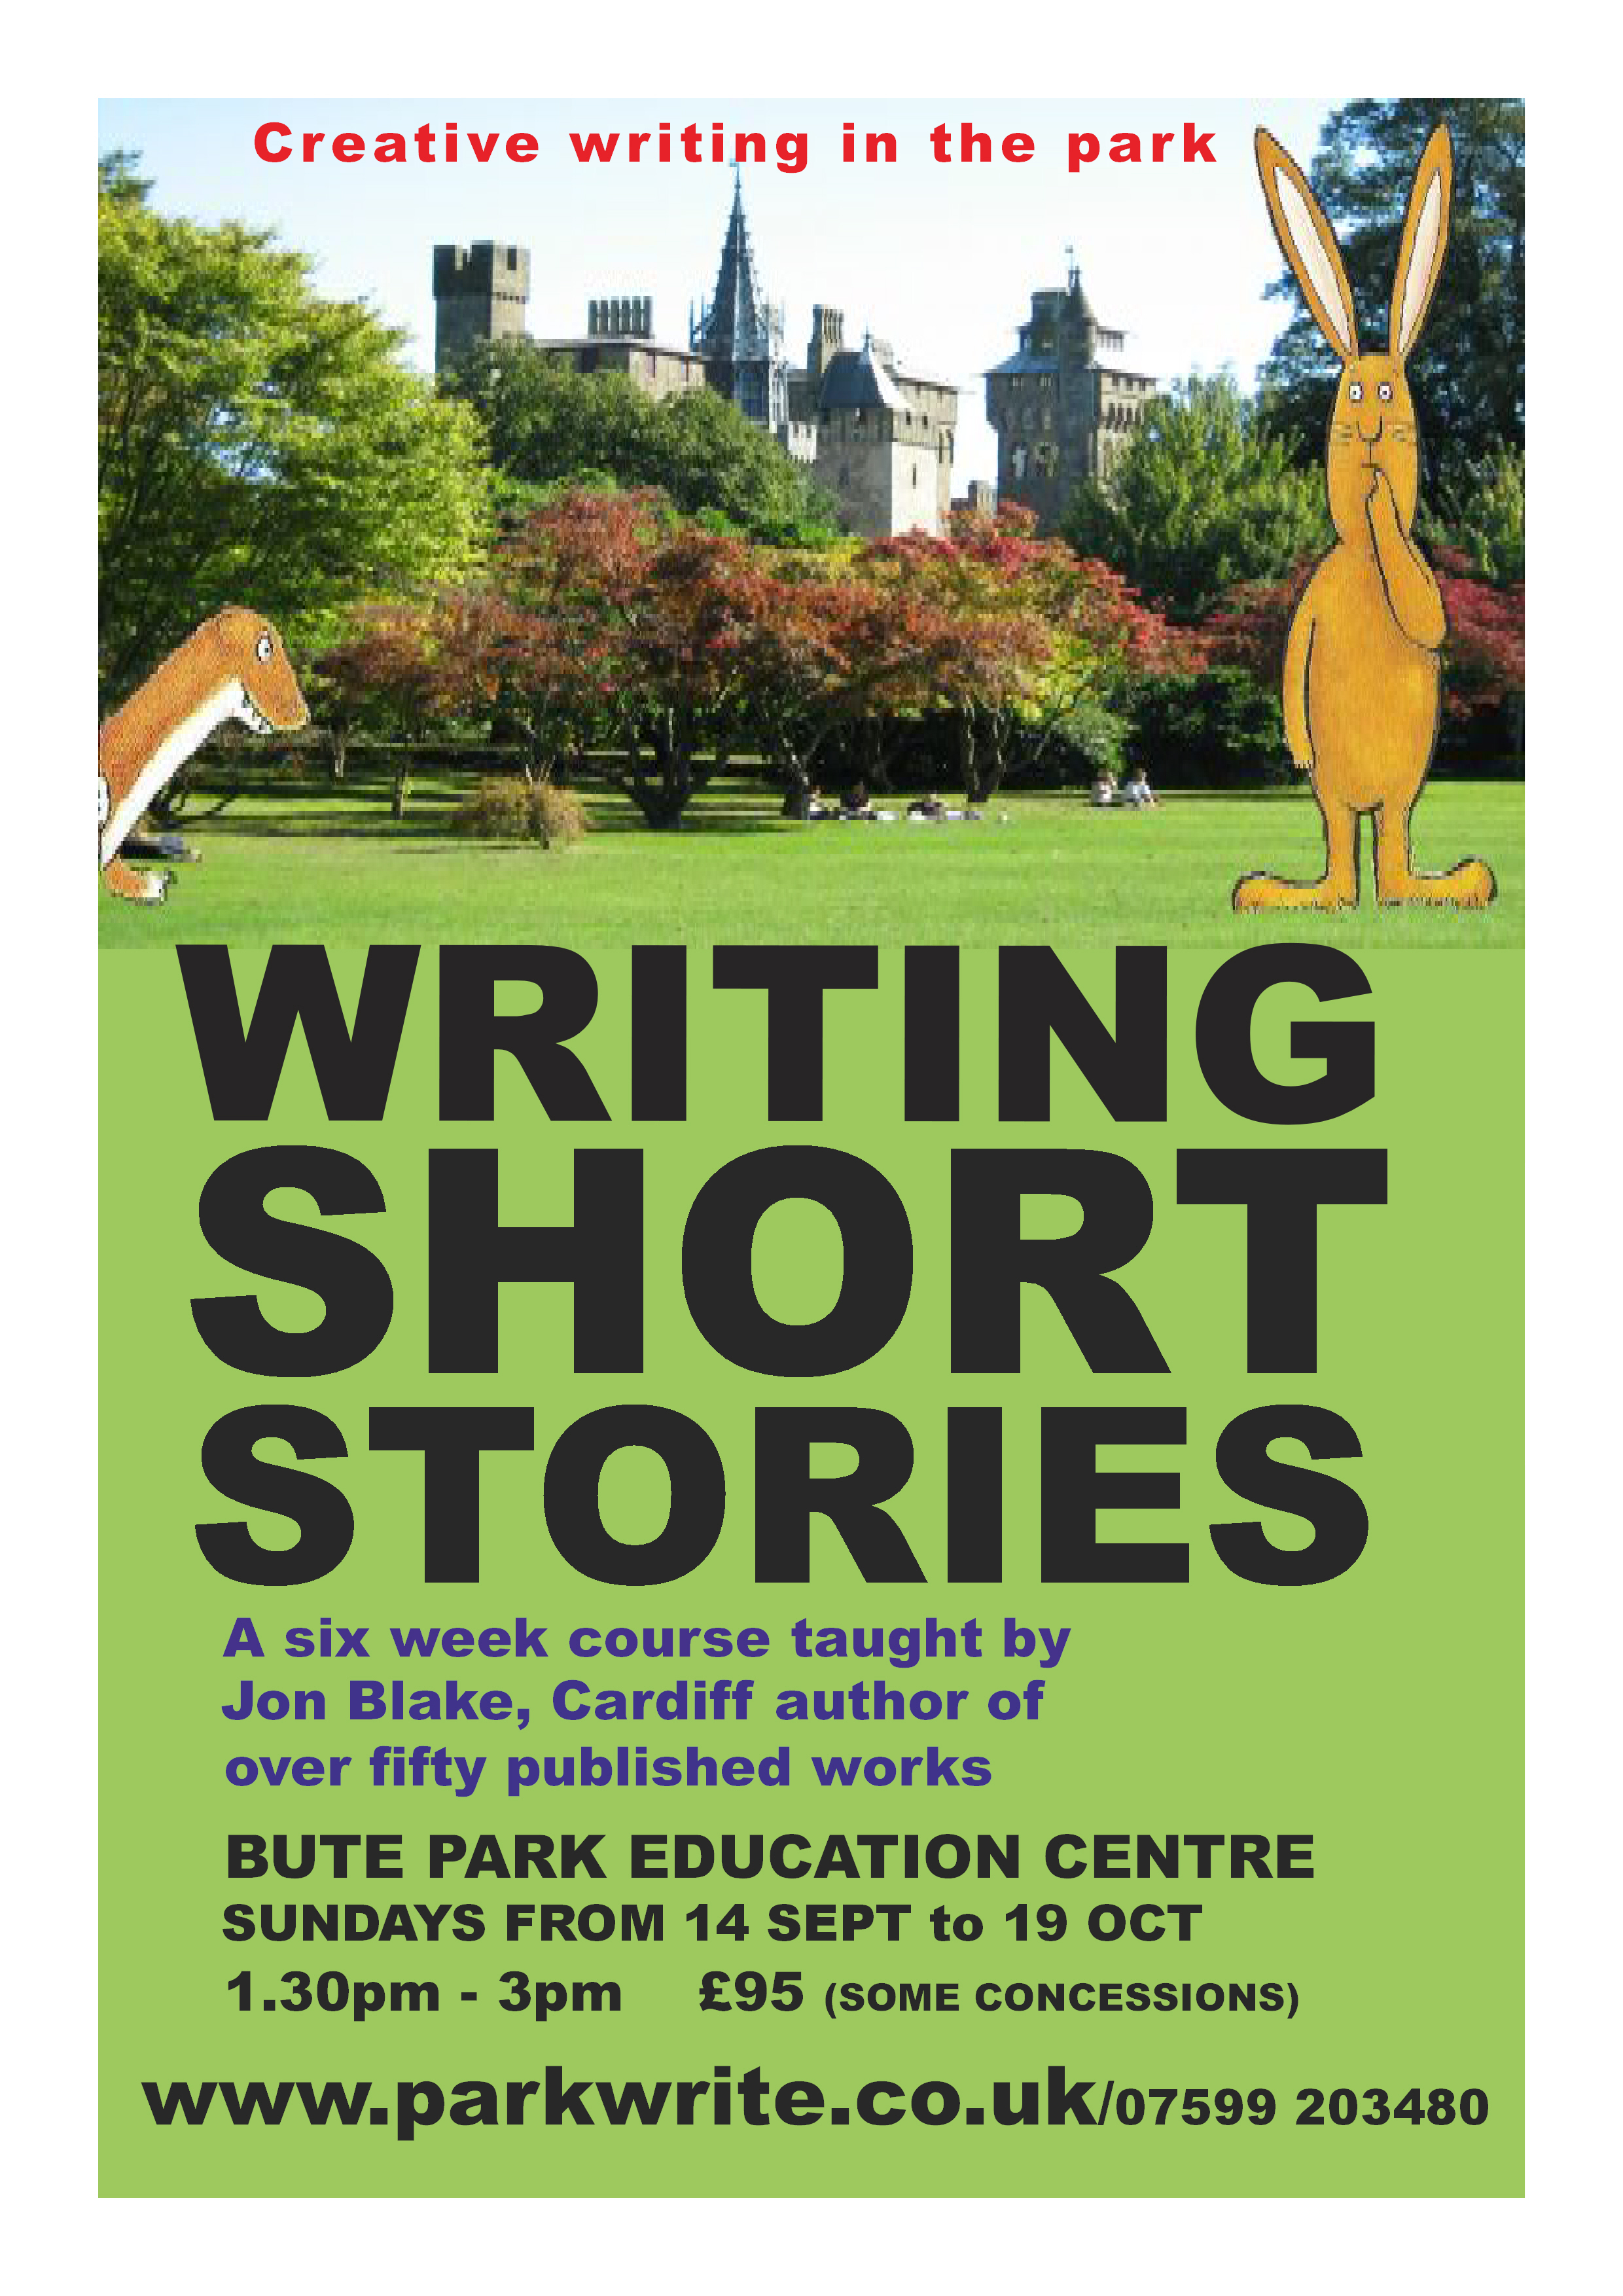 Creative writing articles about short story collections